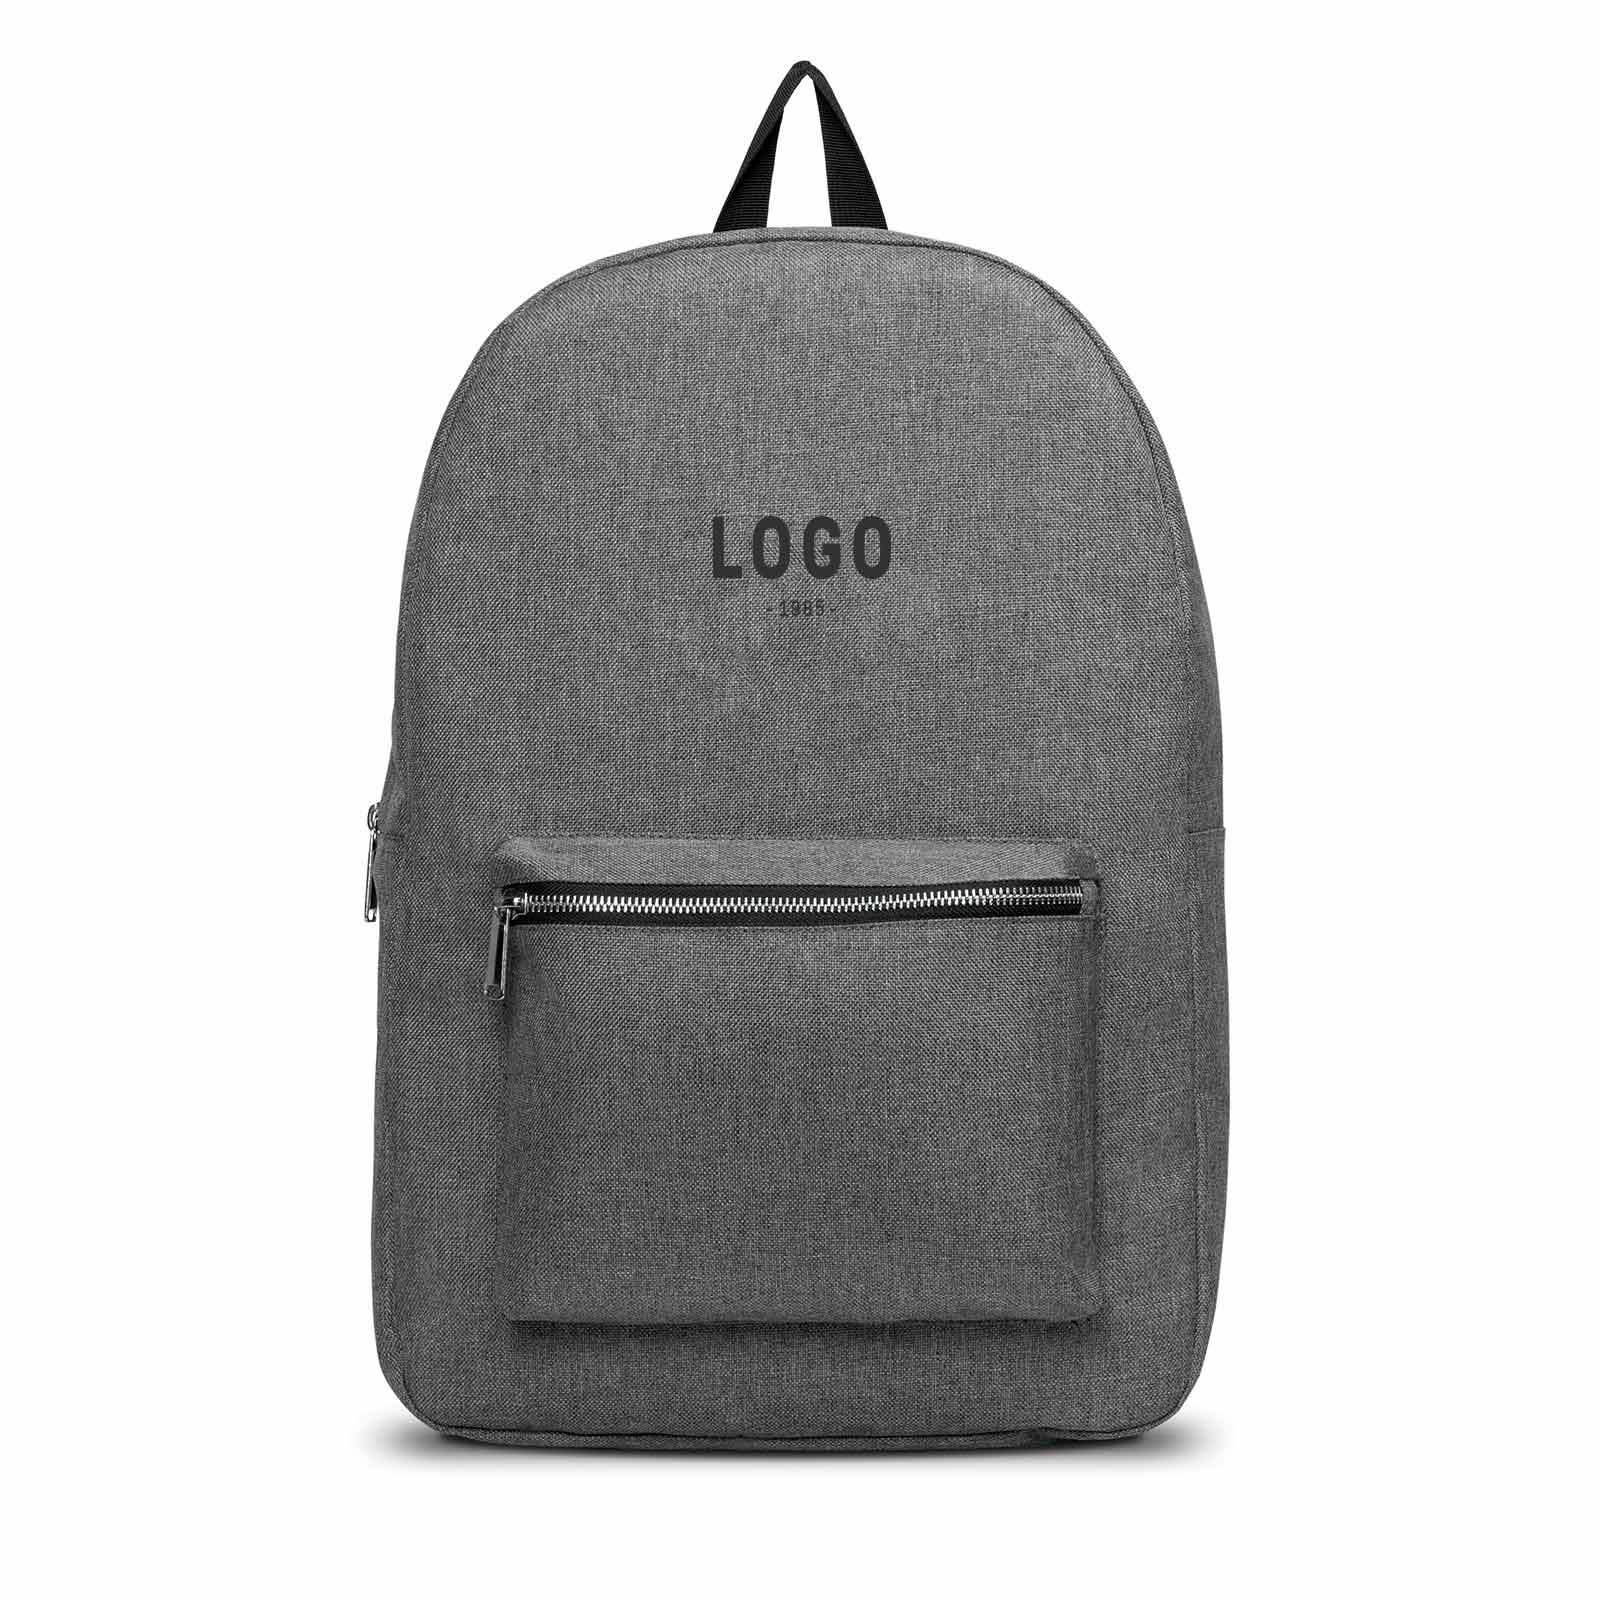 122715 heather backpack one color imprint